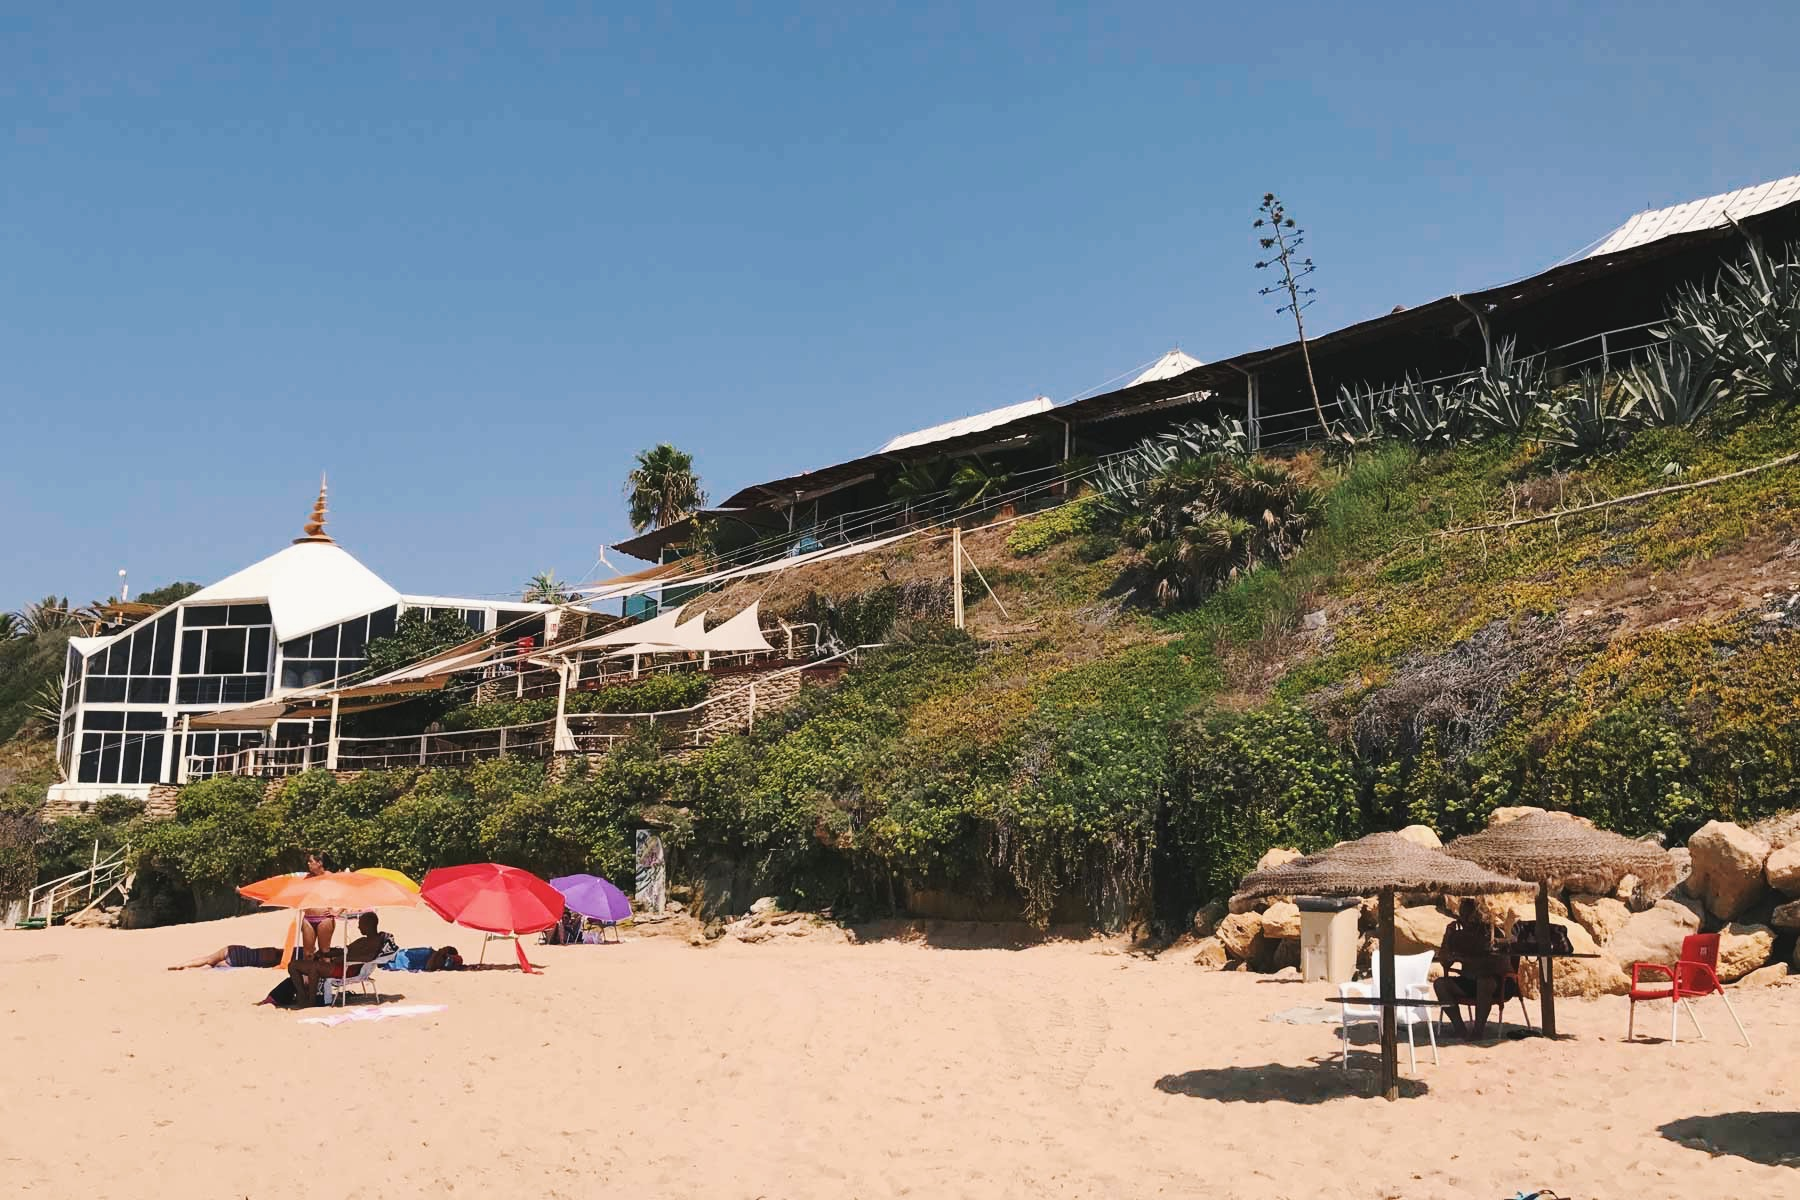 Caños de Meca is usually very busy during August. I visited in Early September and it was perfect.